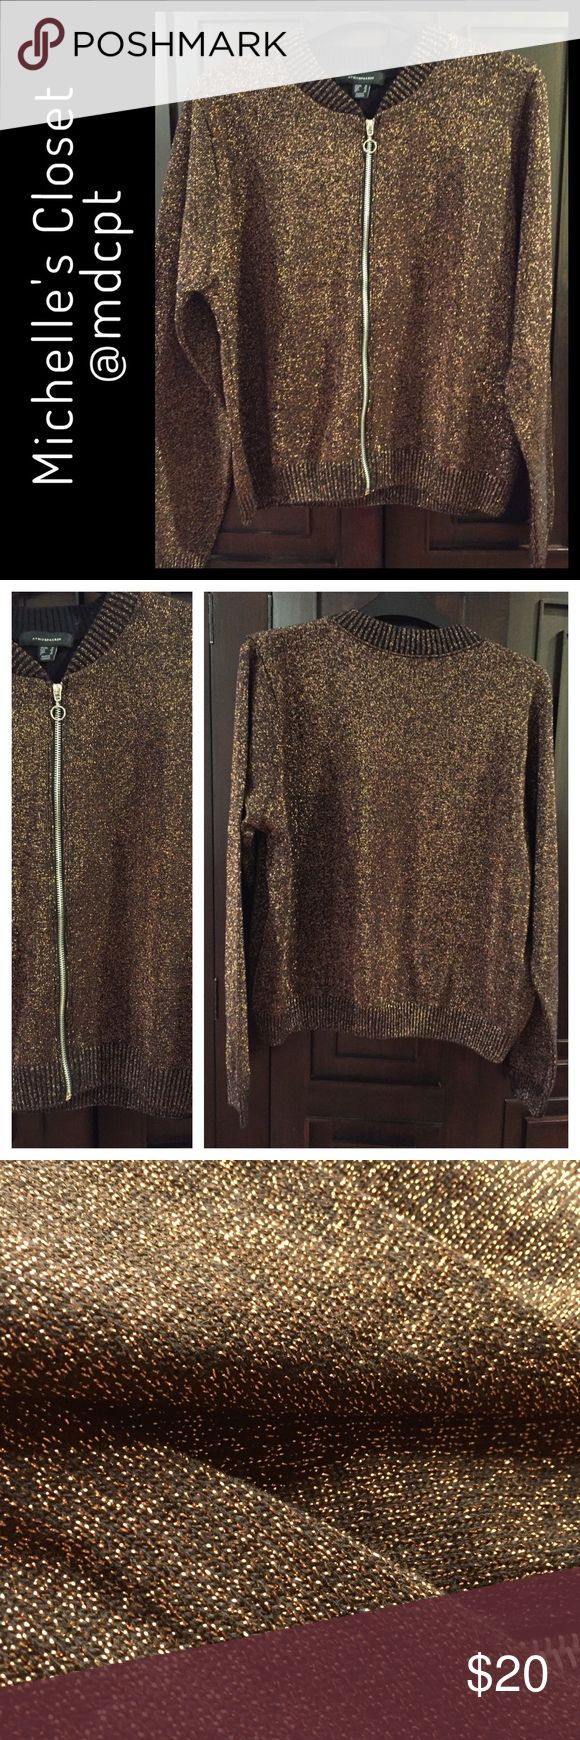 """Festive jacket Metallic fibers in a coppery tone over black background.  The pictures don't give the sparkle effect justice.  Length on back is 22"""", sleeves 24"""" long.  Bomber jacket styling with ribbed bottom, neckline and wrist cuffs.  Perfect for layering and adding sparkle to a black outfit. Jackets & Coats"""